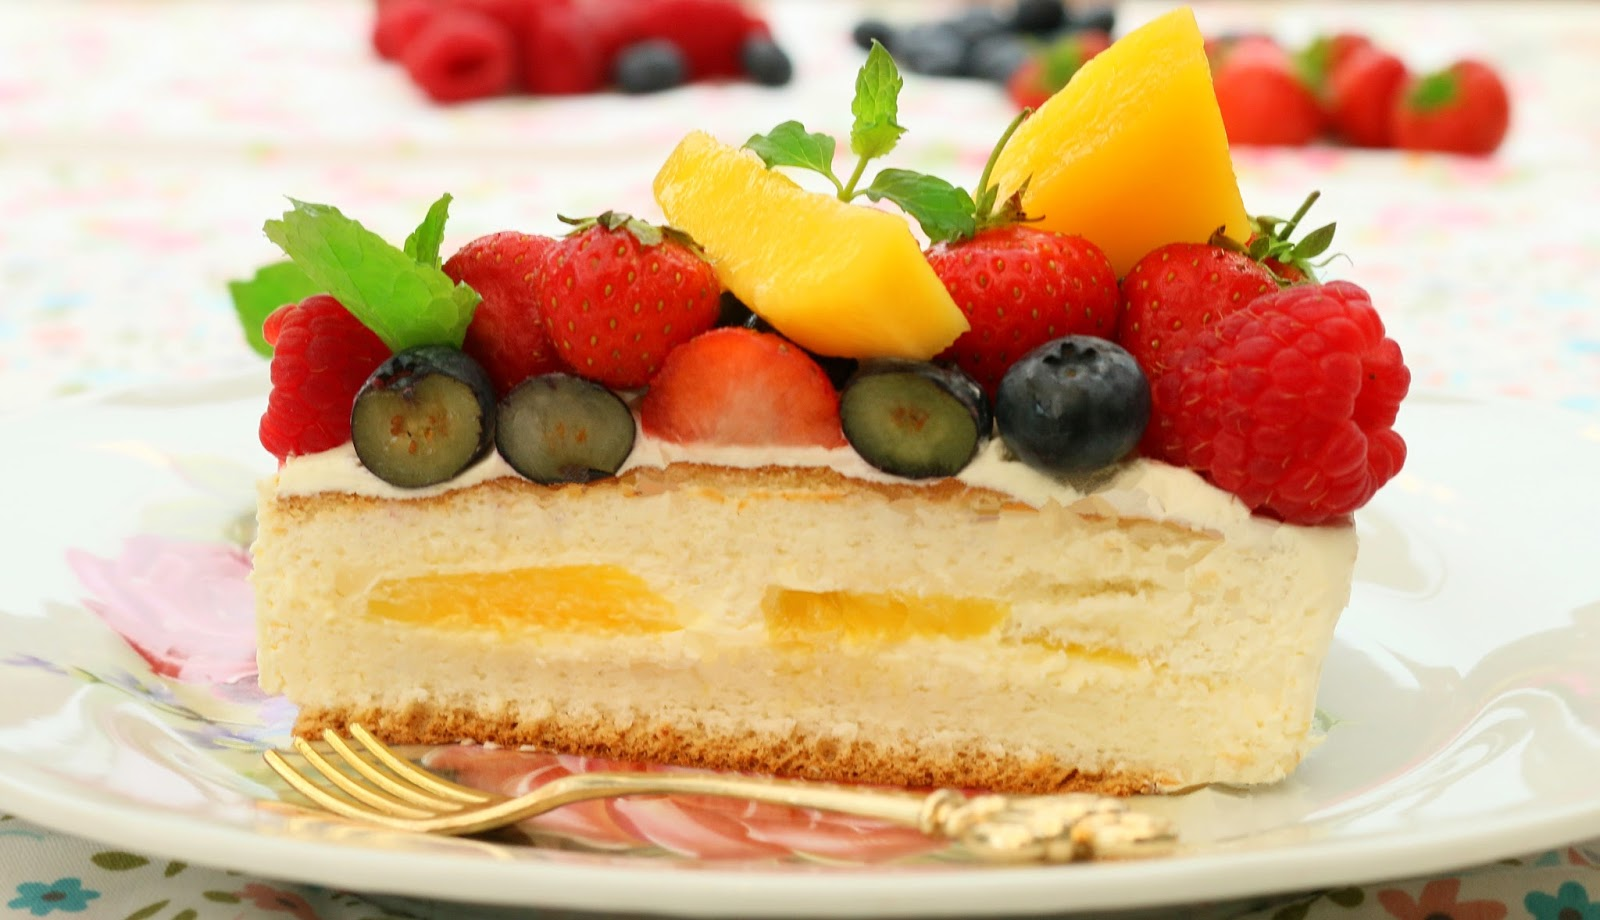 Wow A Mixed Fruit Cream Cake Nearly As Impressive Baked One Place The Fresh Mangos Onto And Top With Heavy